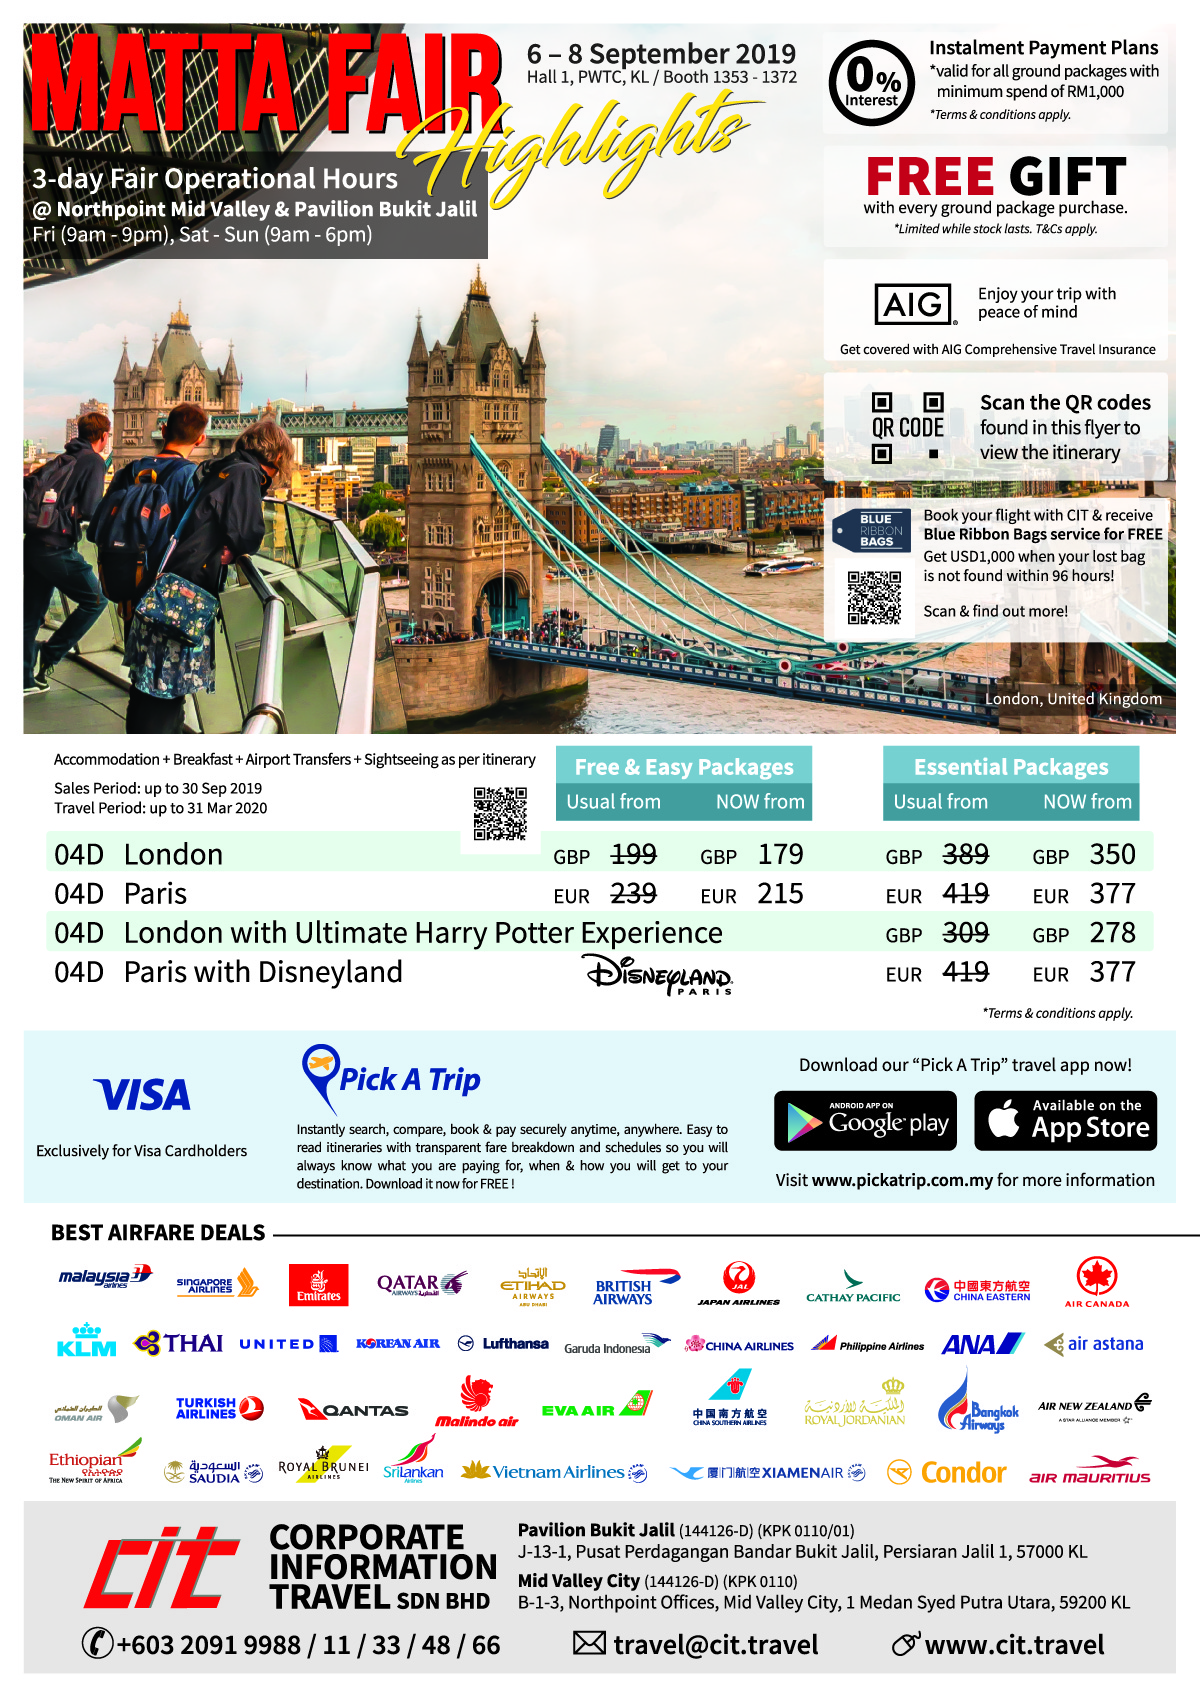 MATTA Fair September 2019 | Corporate Information Travel